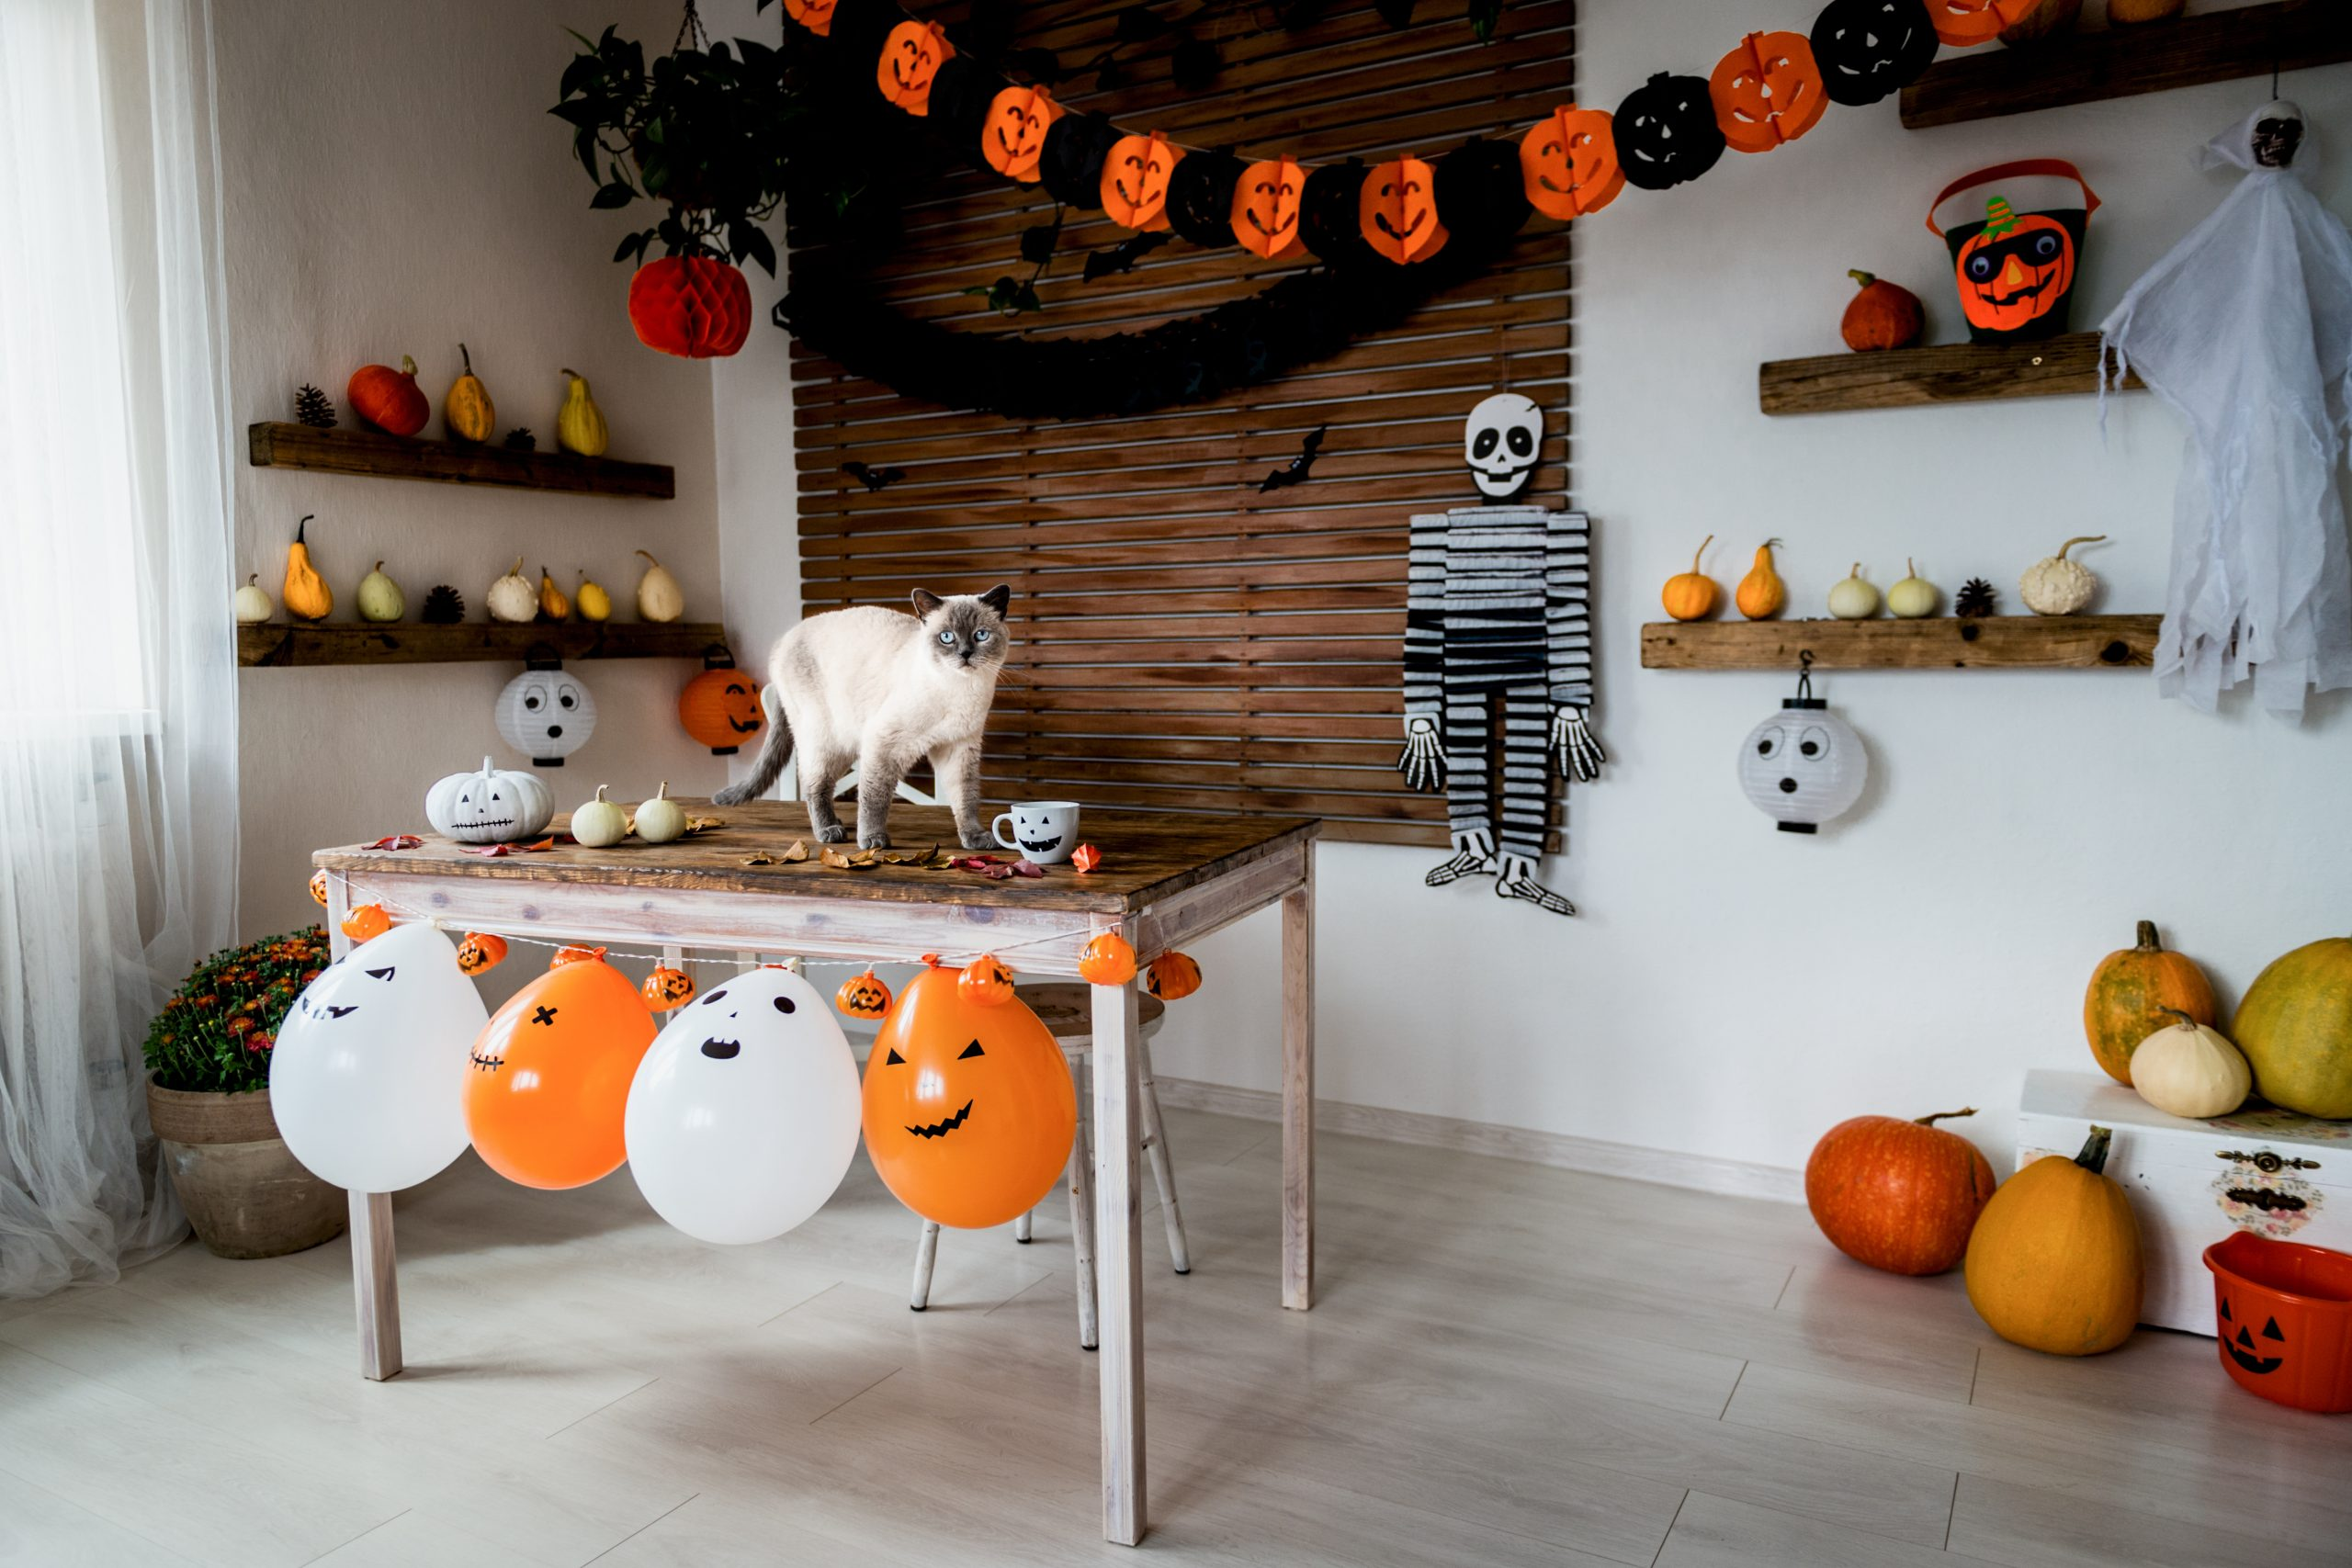 Halloween party with pumpkin decorations